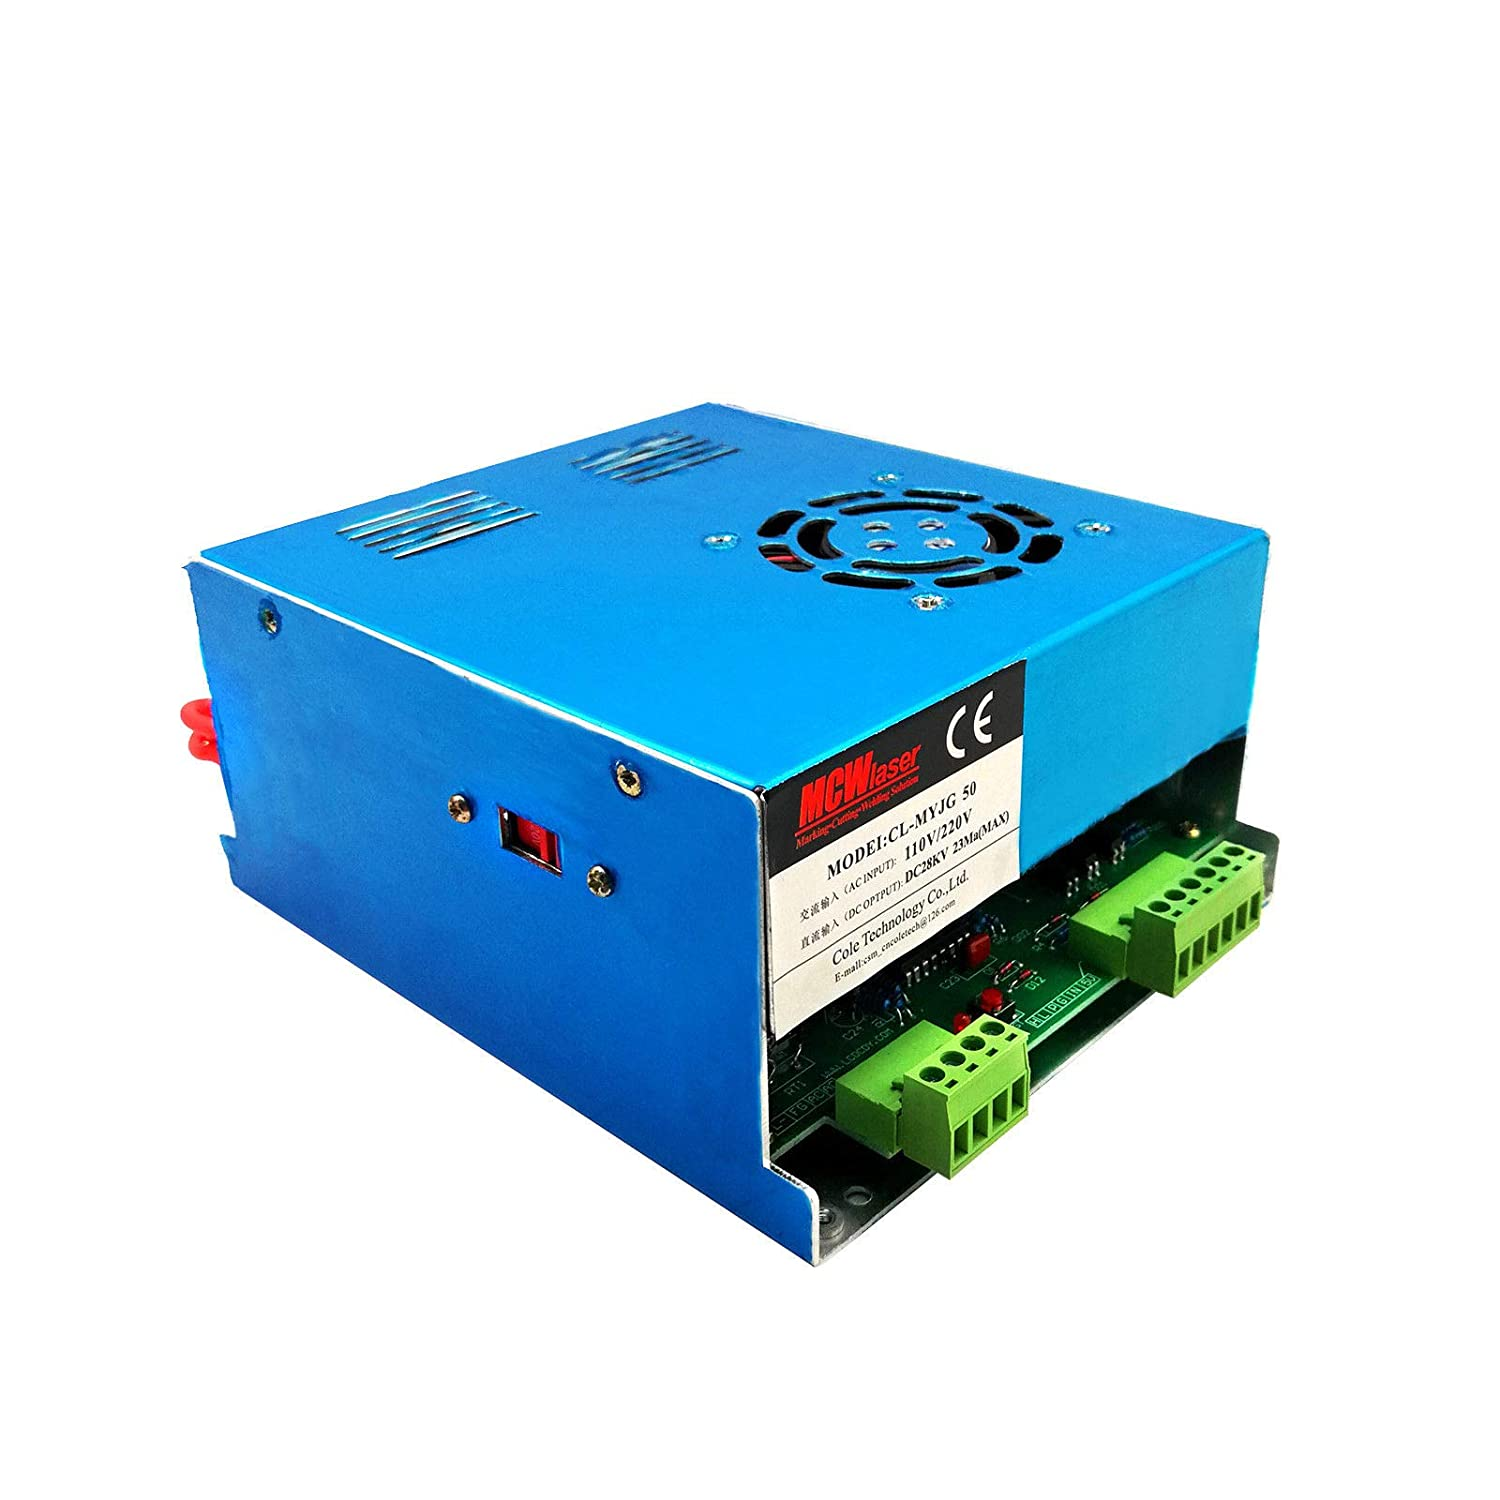 Amazon com: 40W 50W CO2 Laser Power Supply for CO2 Laser